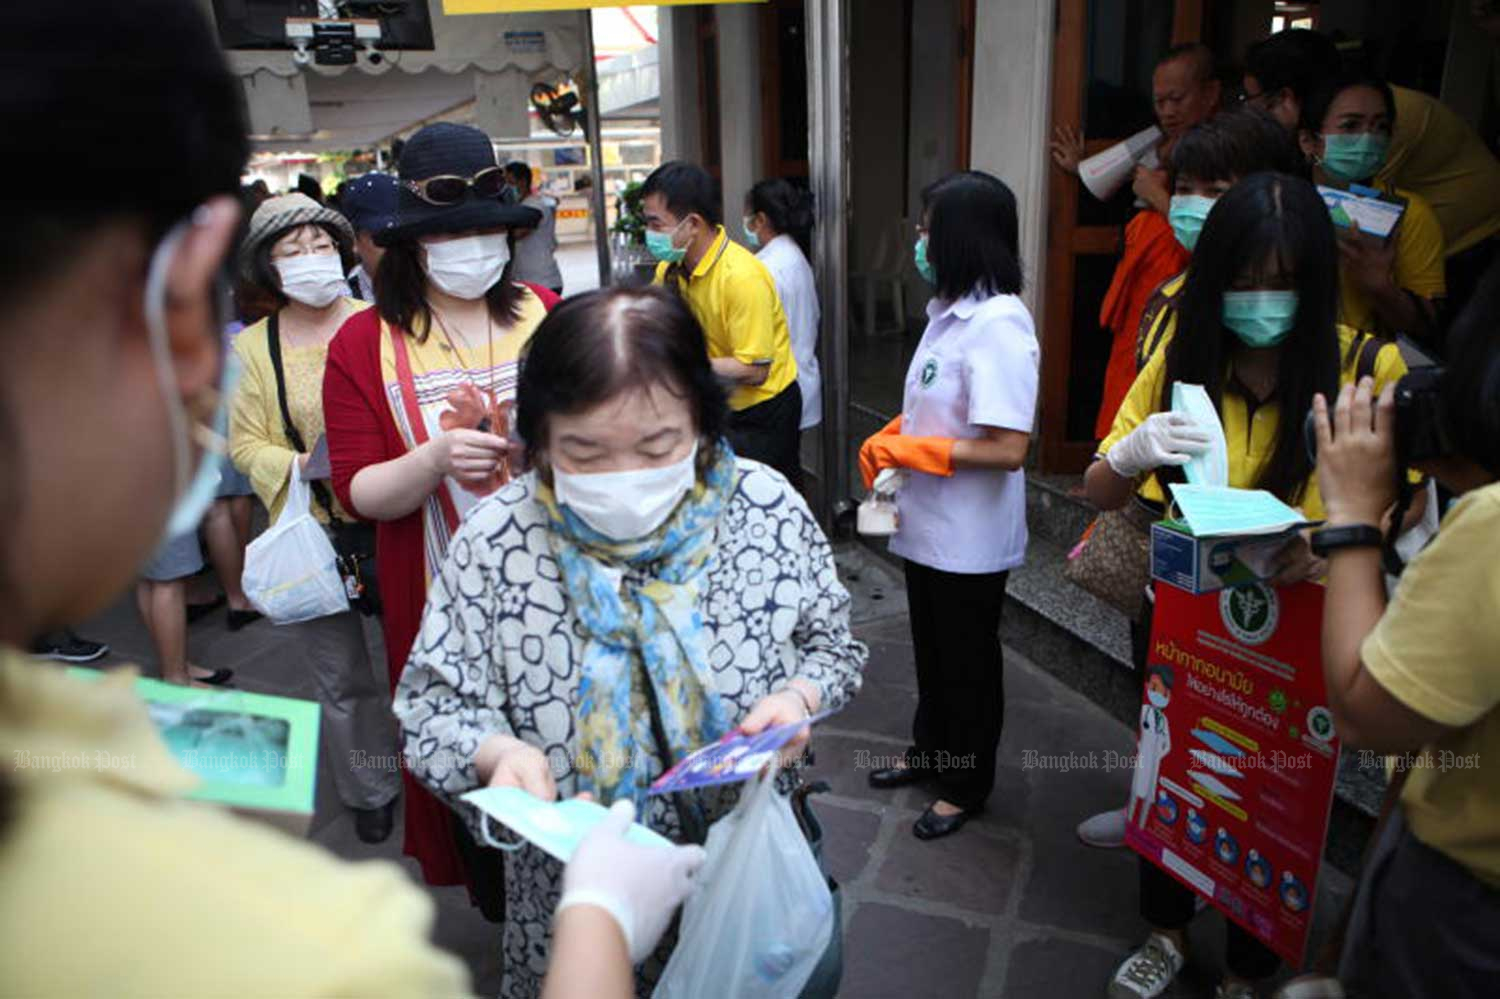 Health volunteers hand out face masks to tourists visiting Wat Pho in Bangkok on Friday. (Photo by Arnun Chonmahatrakool)